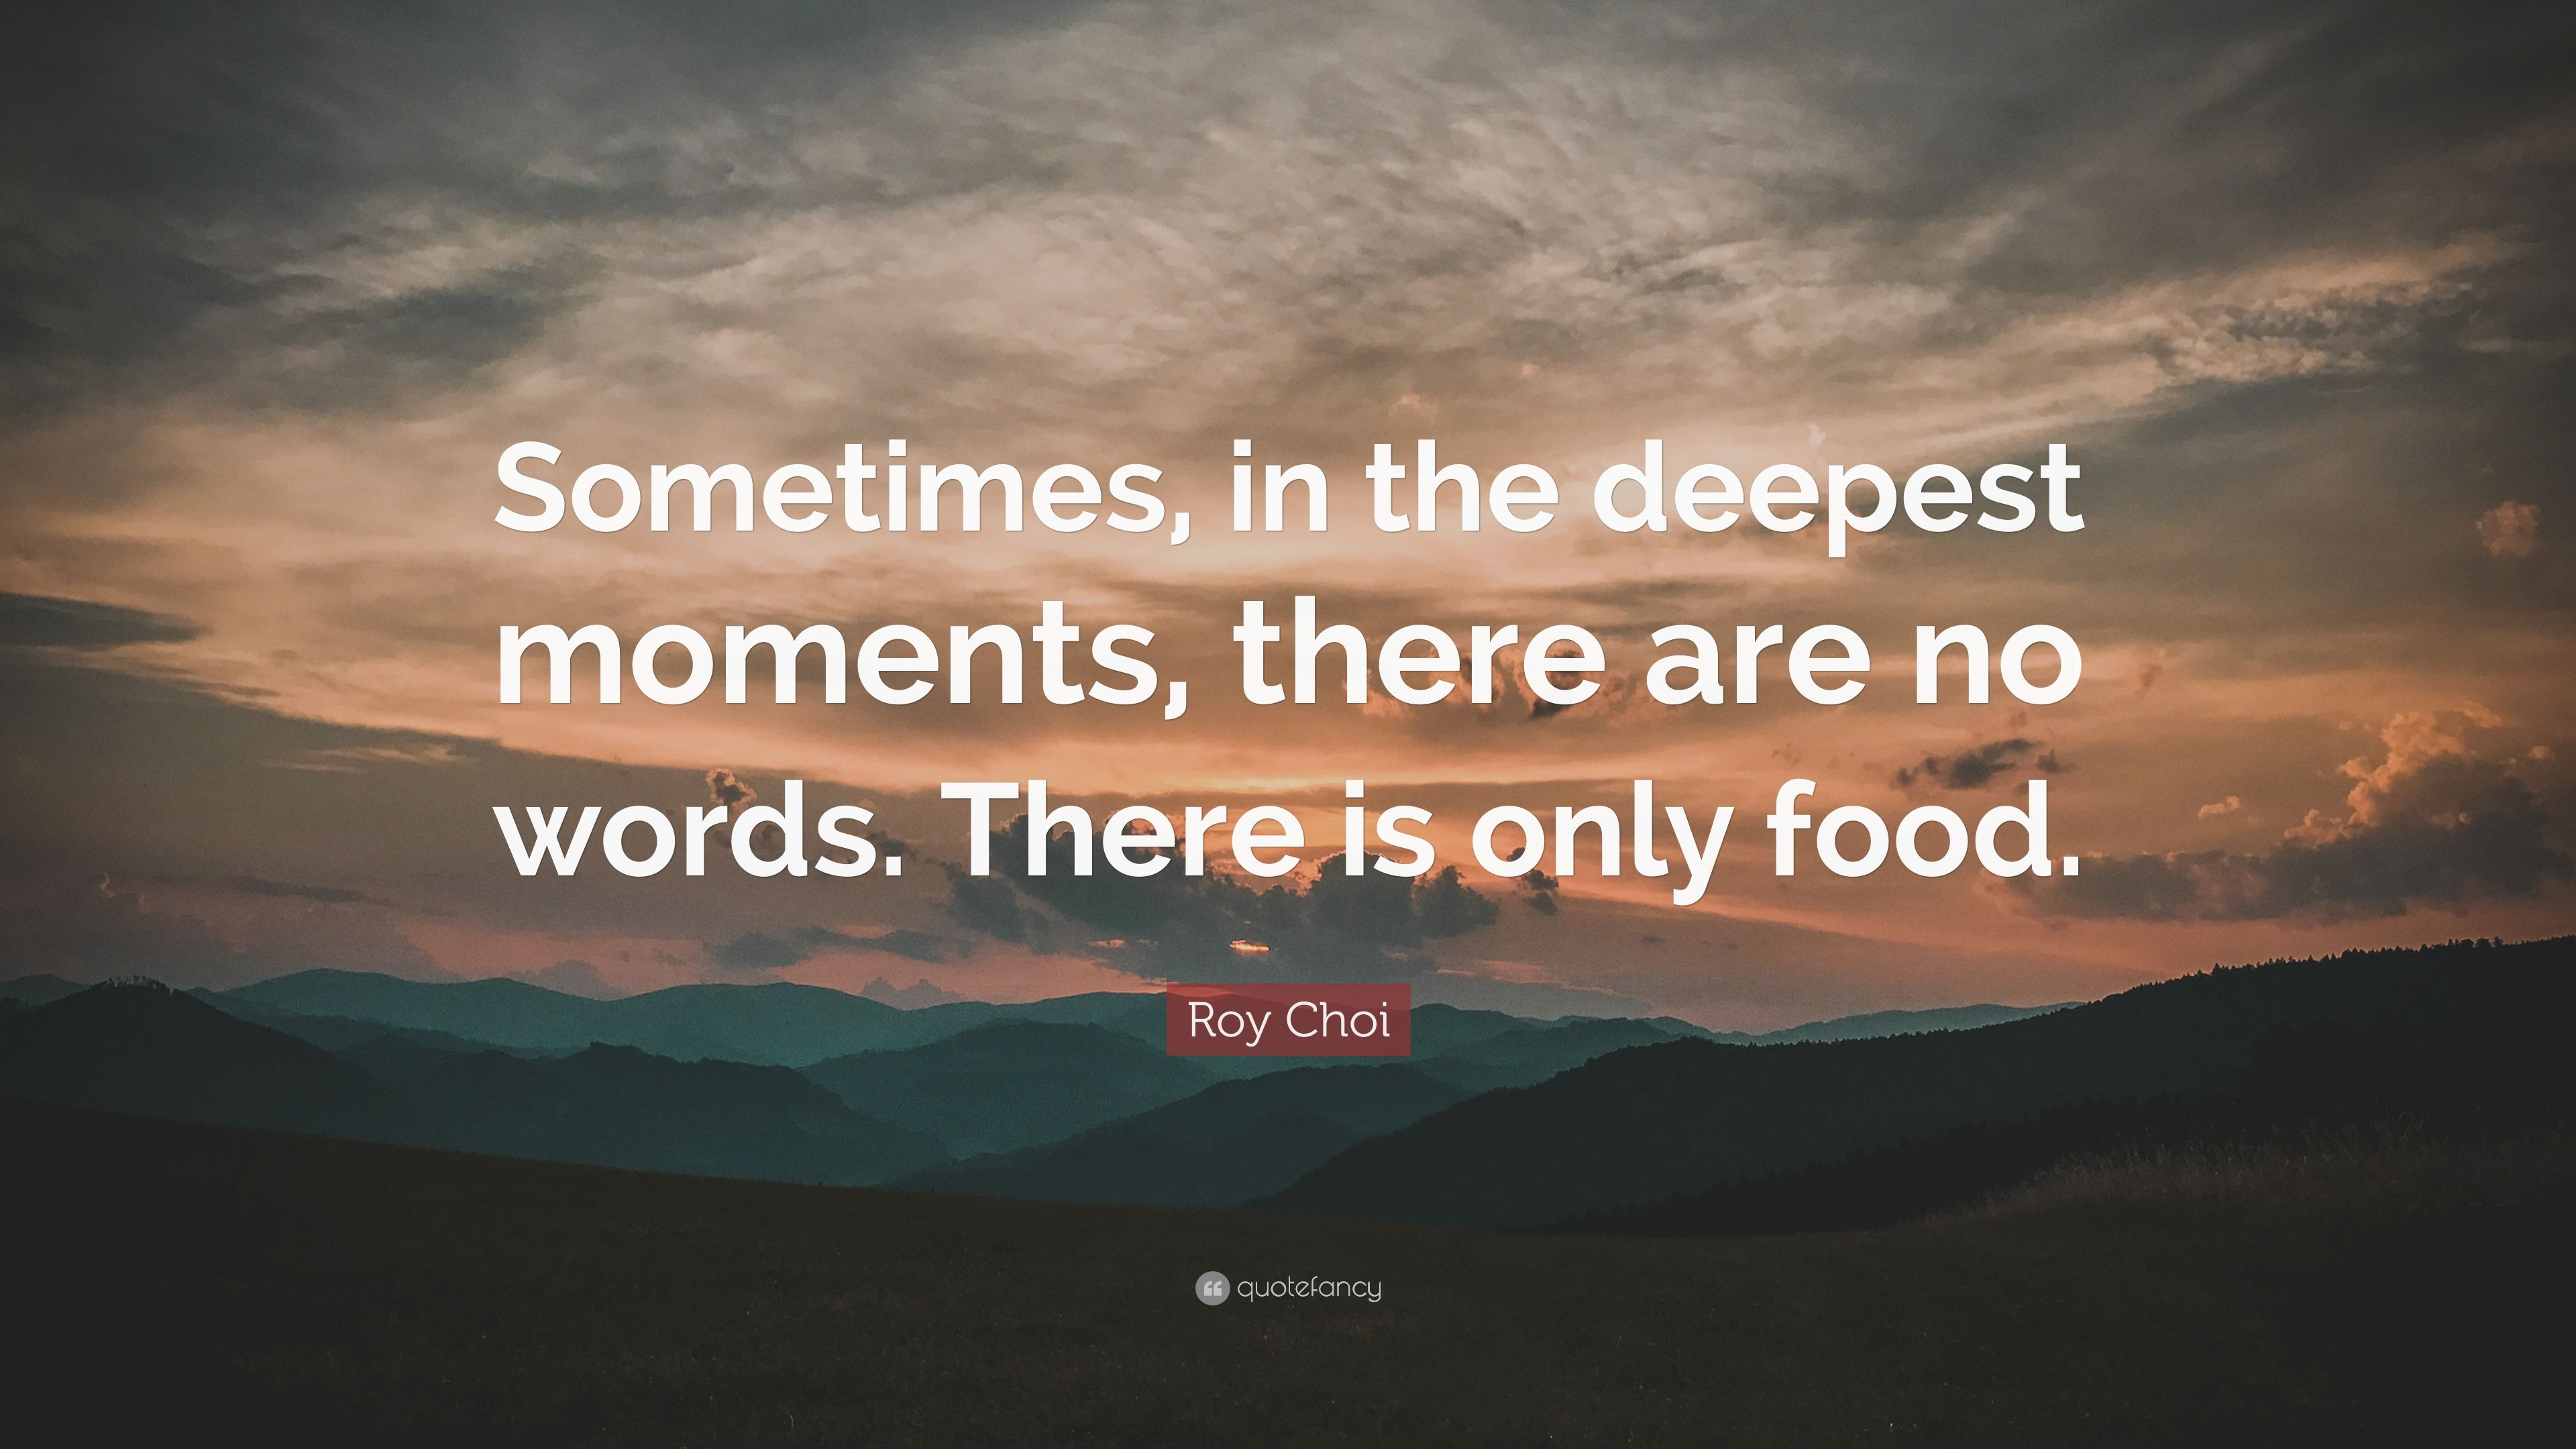 Roy Choi Quote: U201cSometimes, In The Deepest Moments, There Are No Words